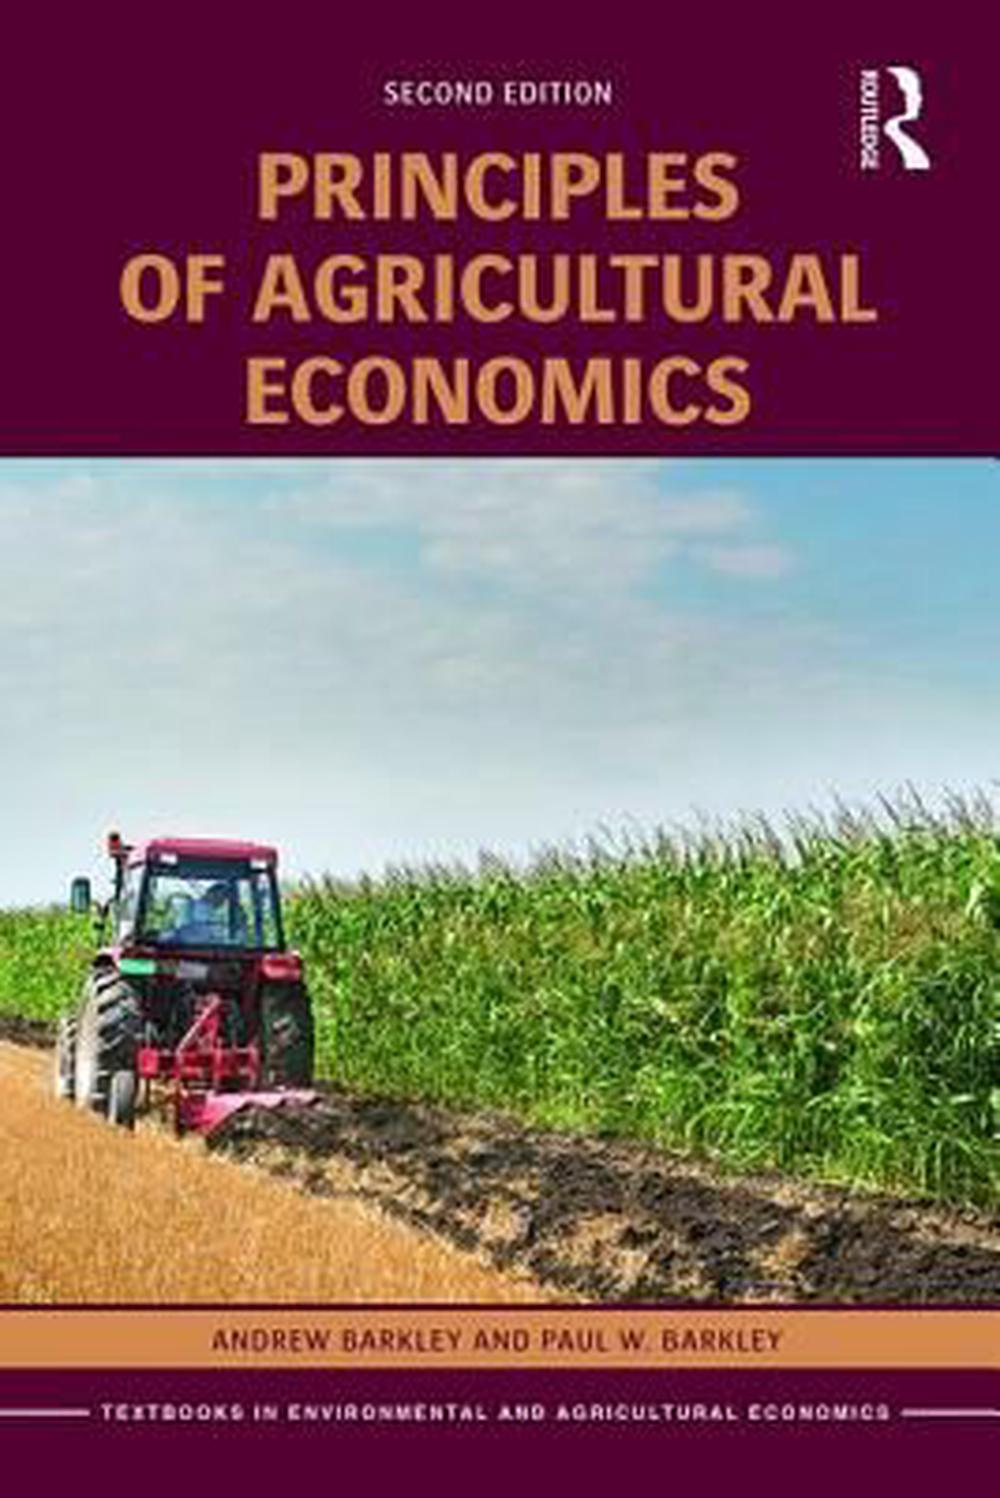 Principles of Agricultural Economics, 2nd Edition